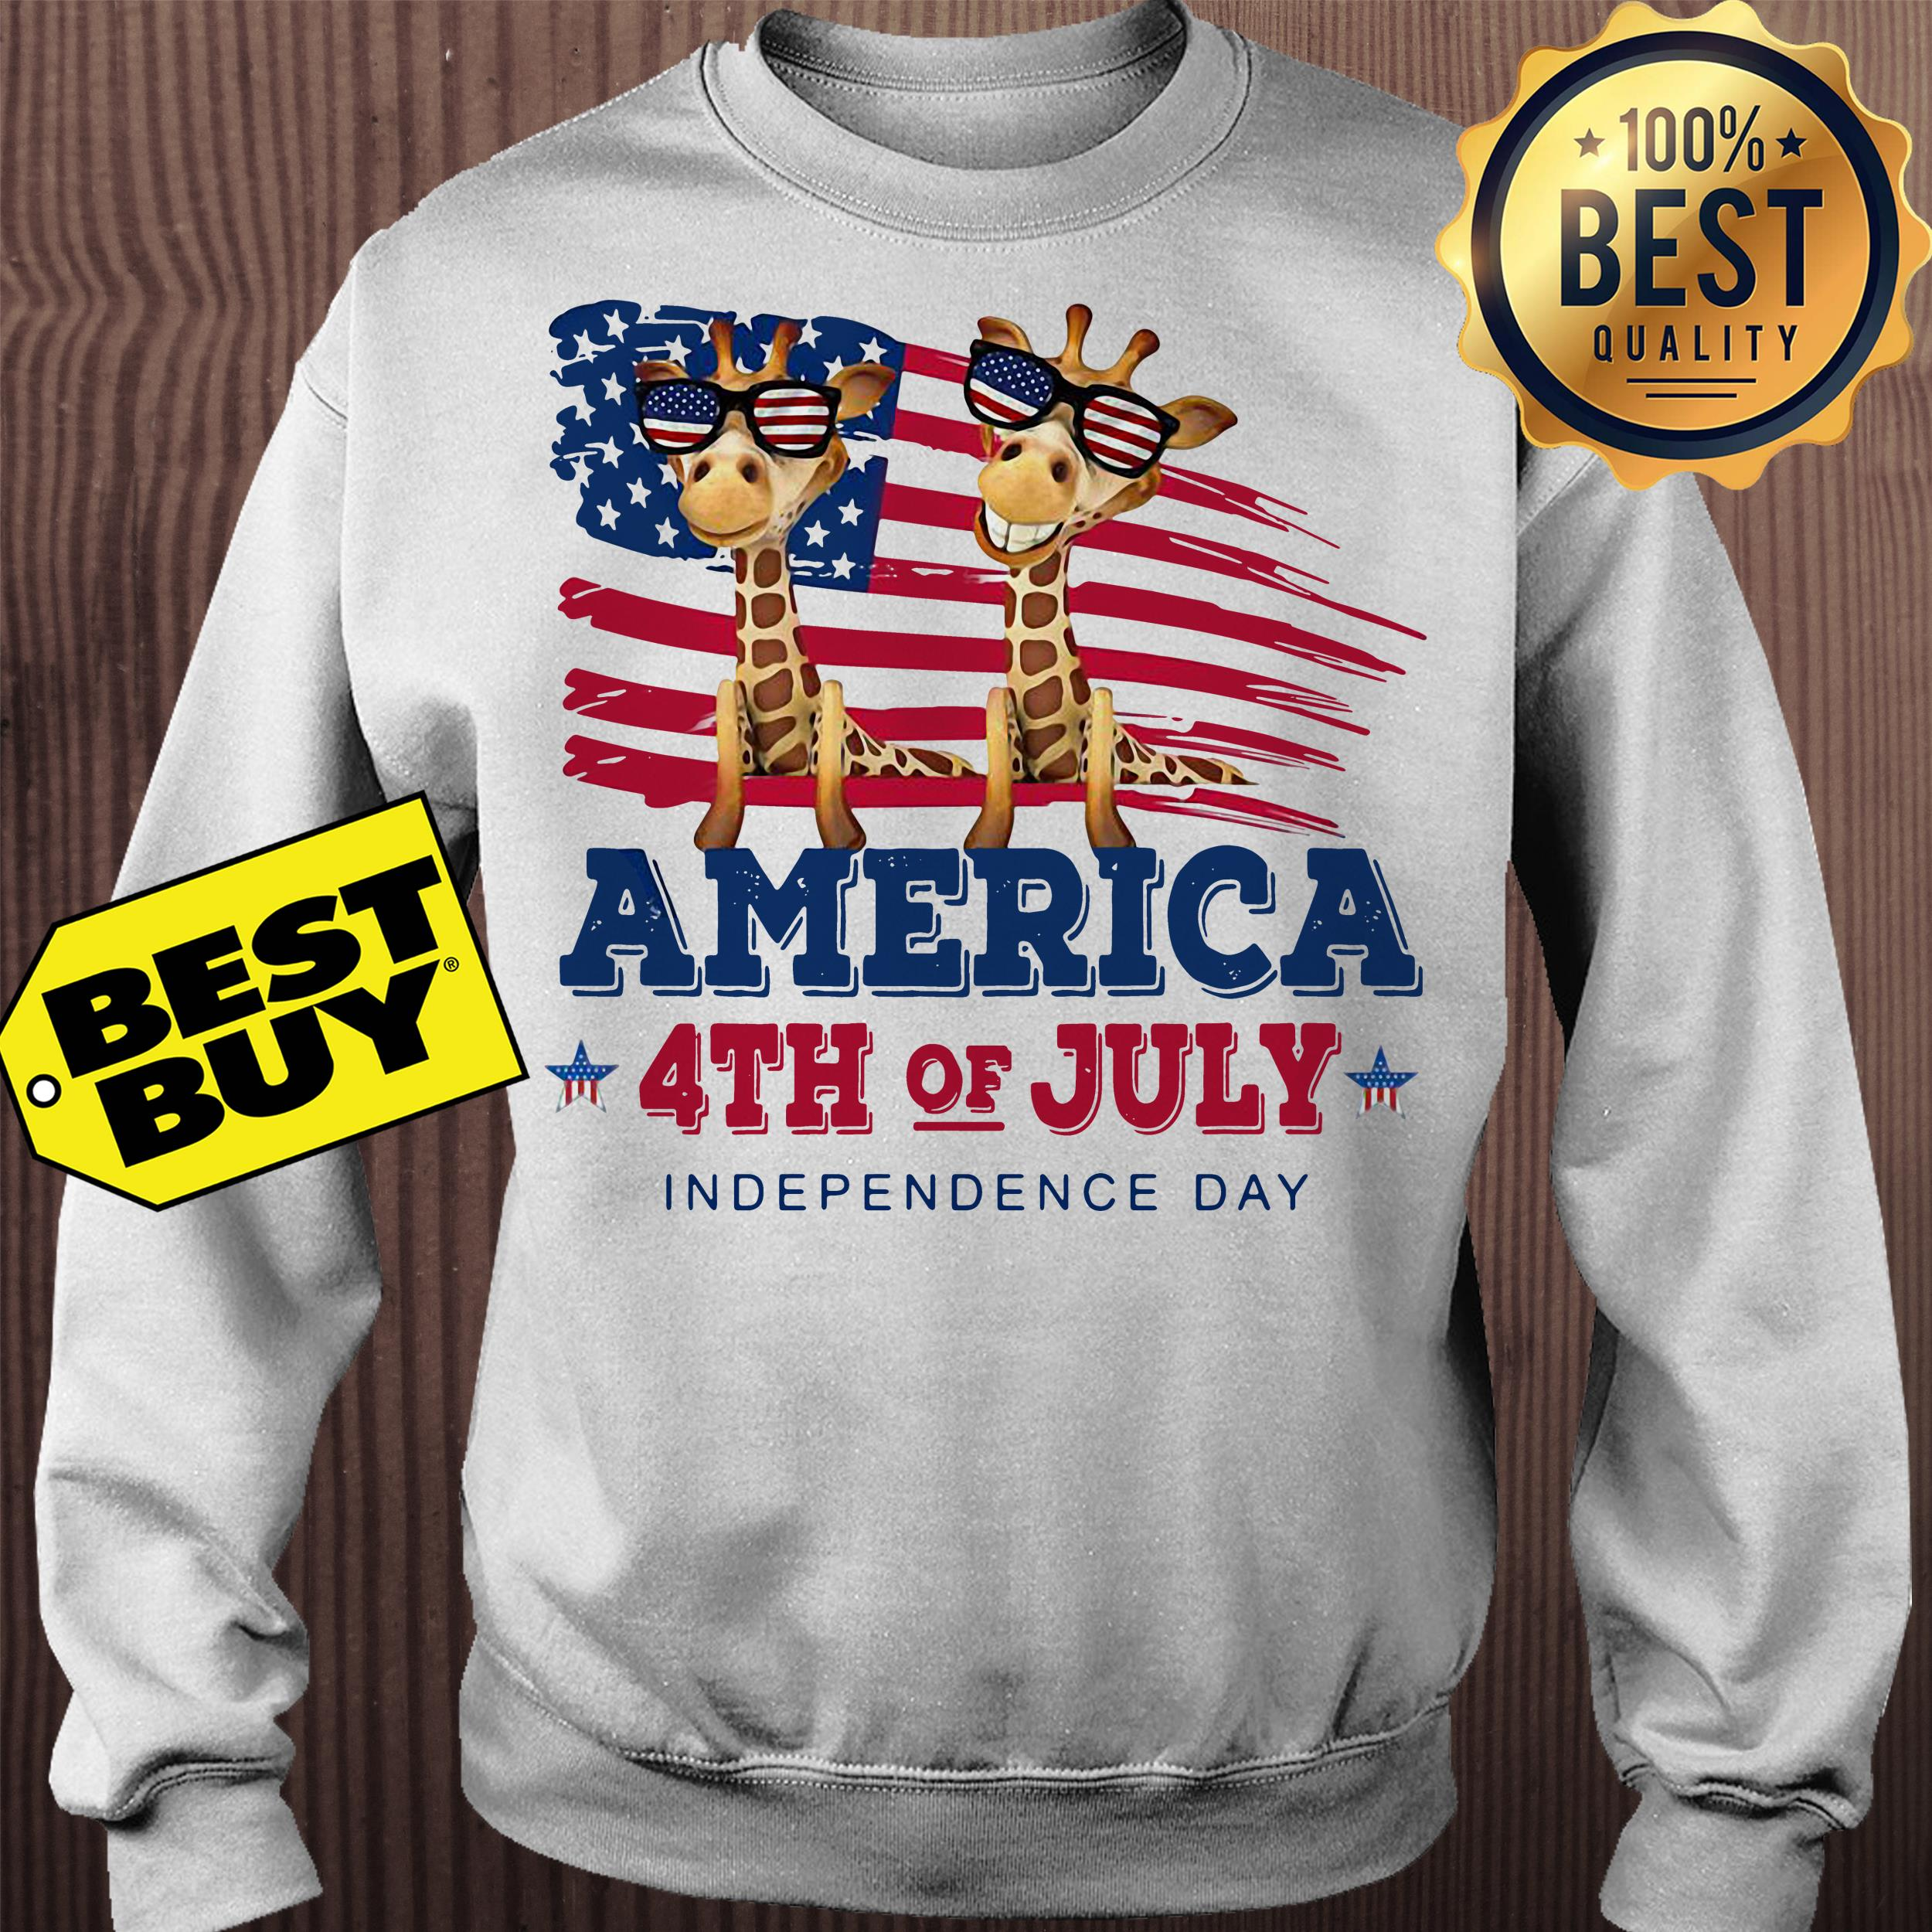 Giraffes America 4th July independence day sweatshirt